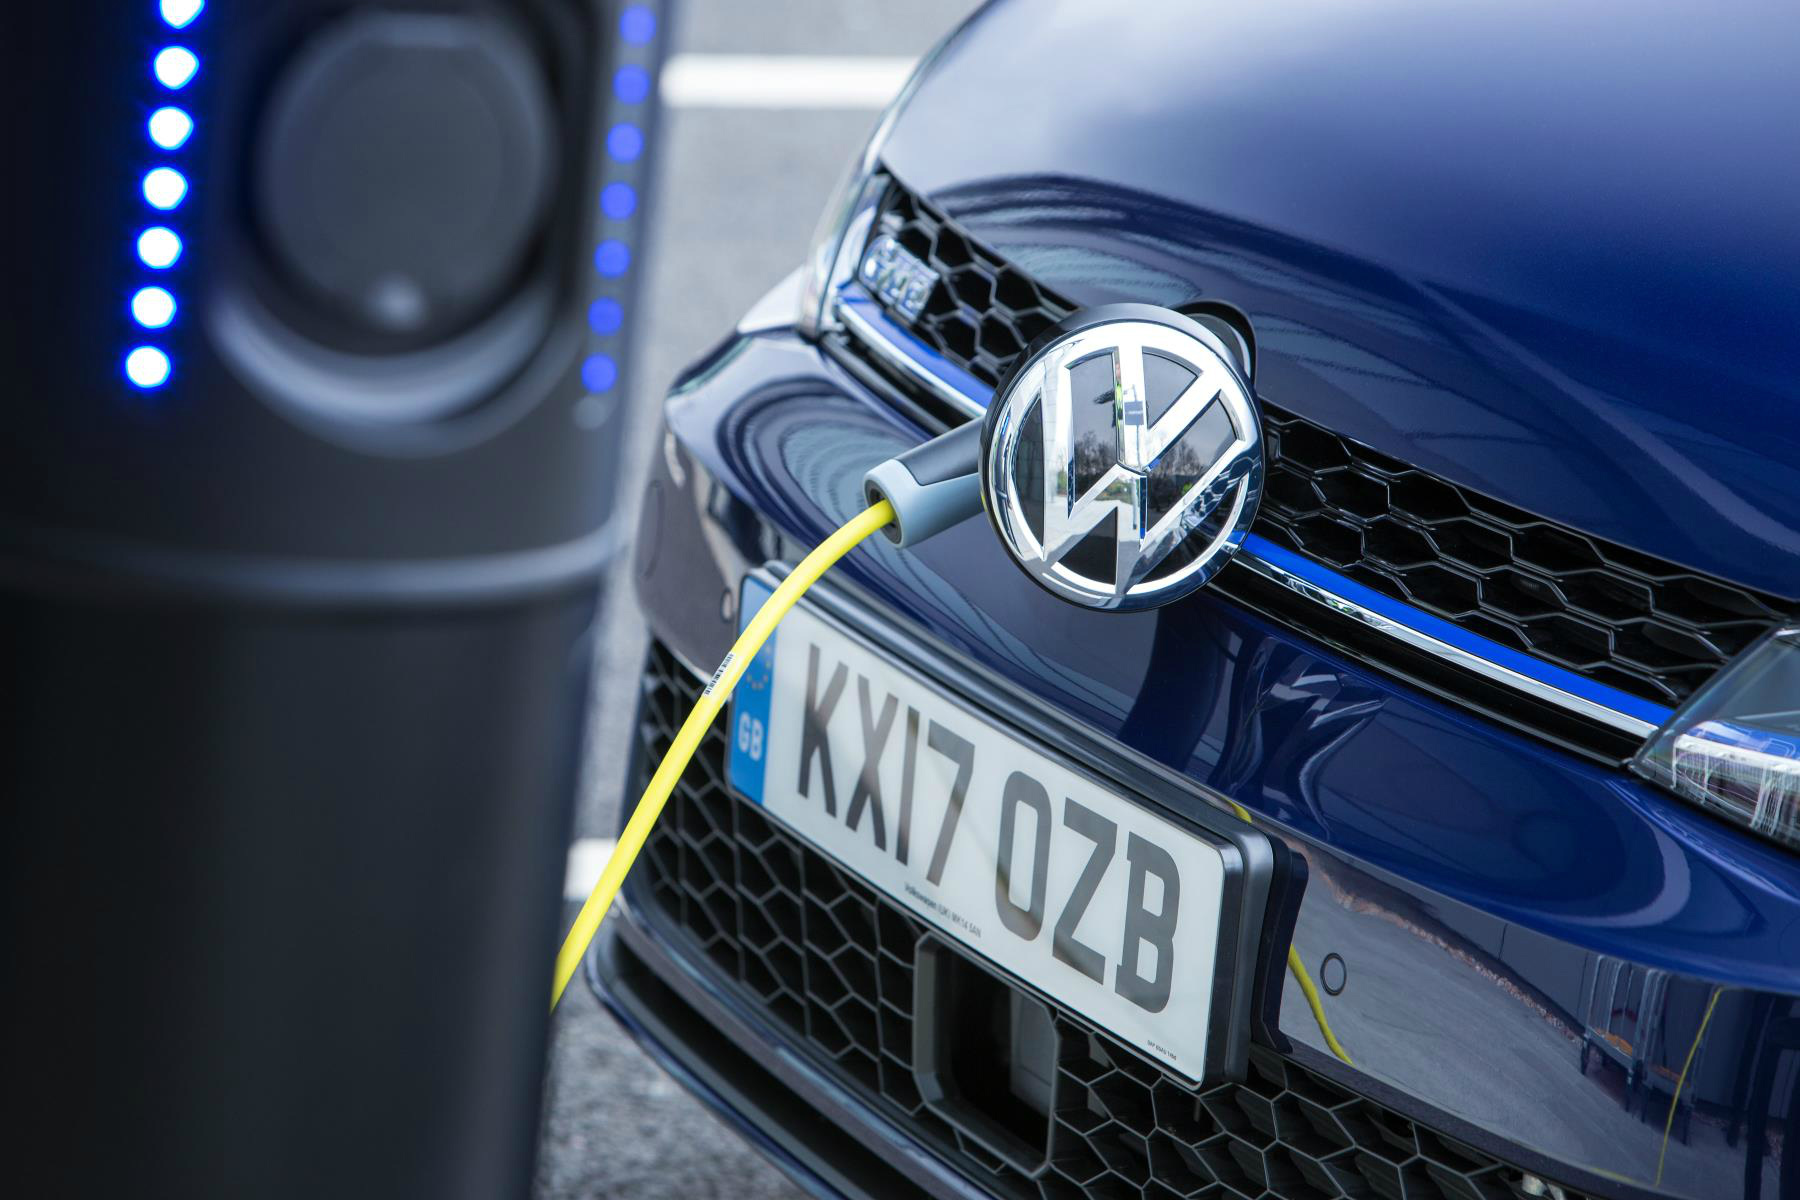 How popular are hybrid and electric cars in the UK?